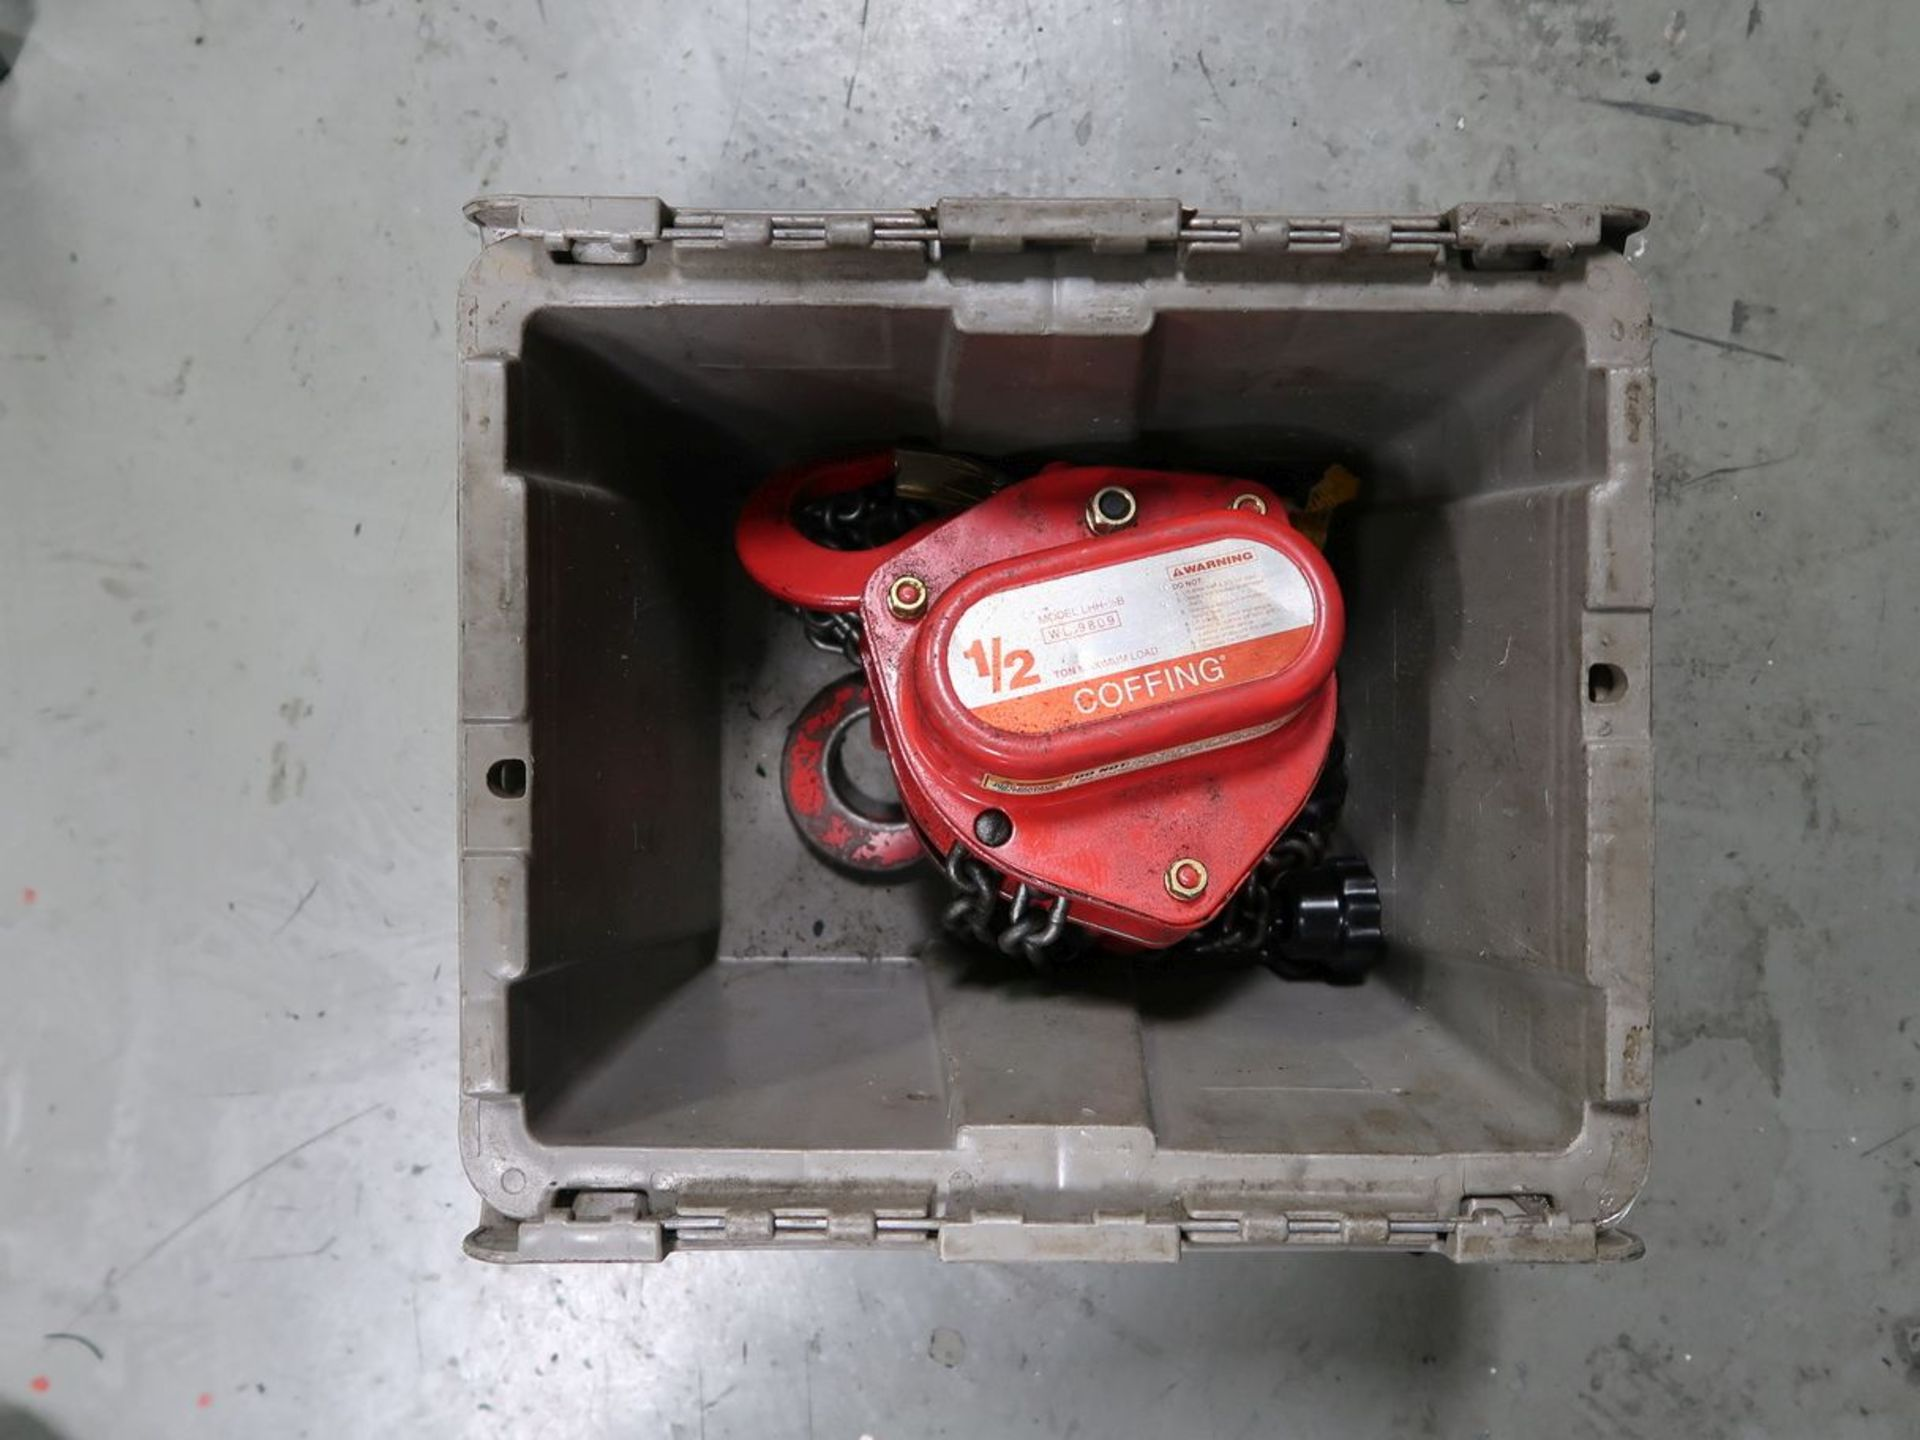 1/2 TON COFFING MANUAL CHAIN HOIST - Image 3 of 3